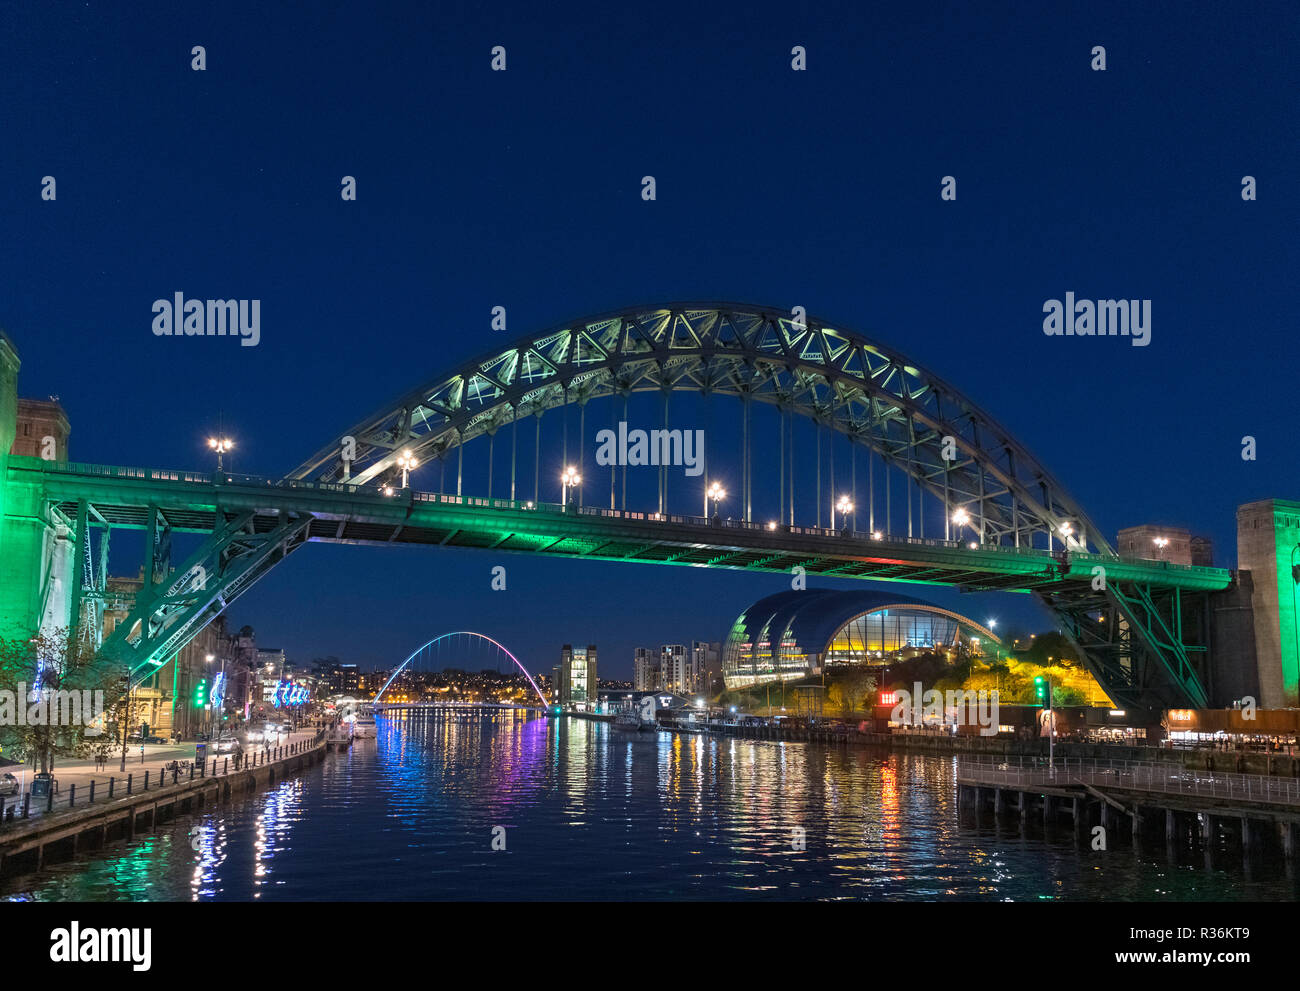 Newcastle bridges. View of the River Tyne and Tyne Bridge at night, Newcastle upon Tyne, England, UK - Stock Image